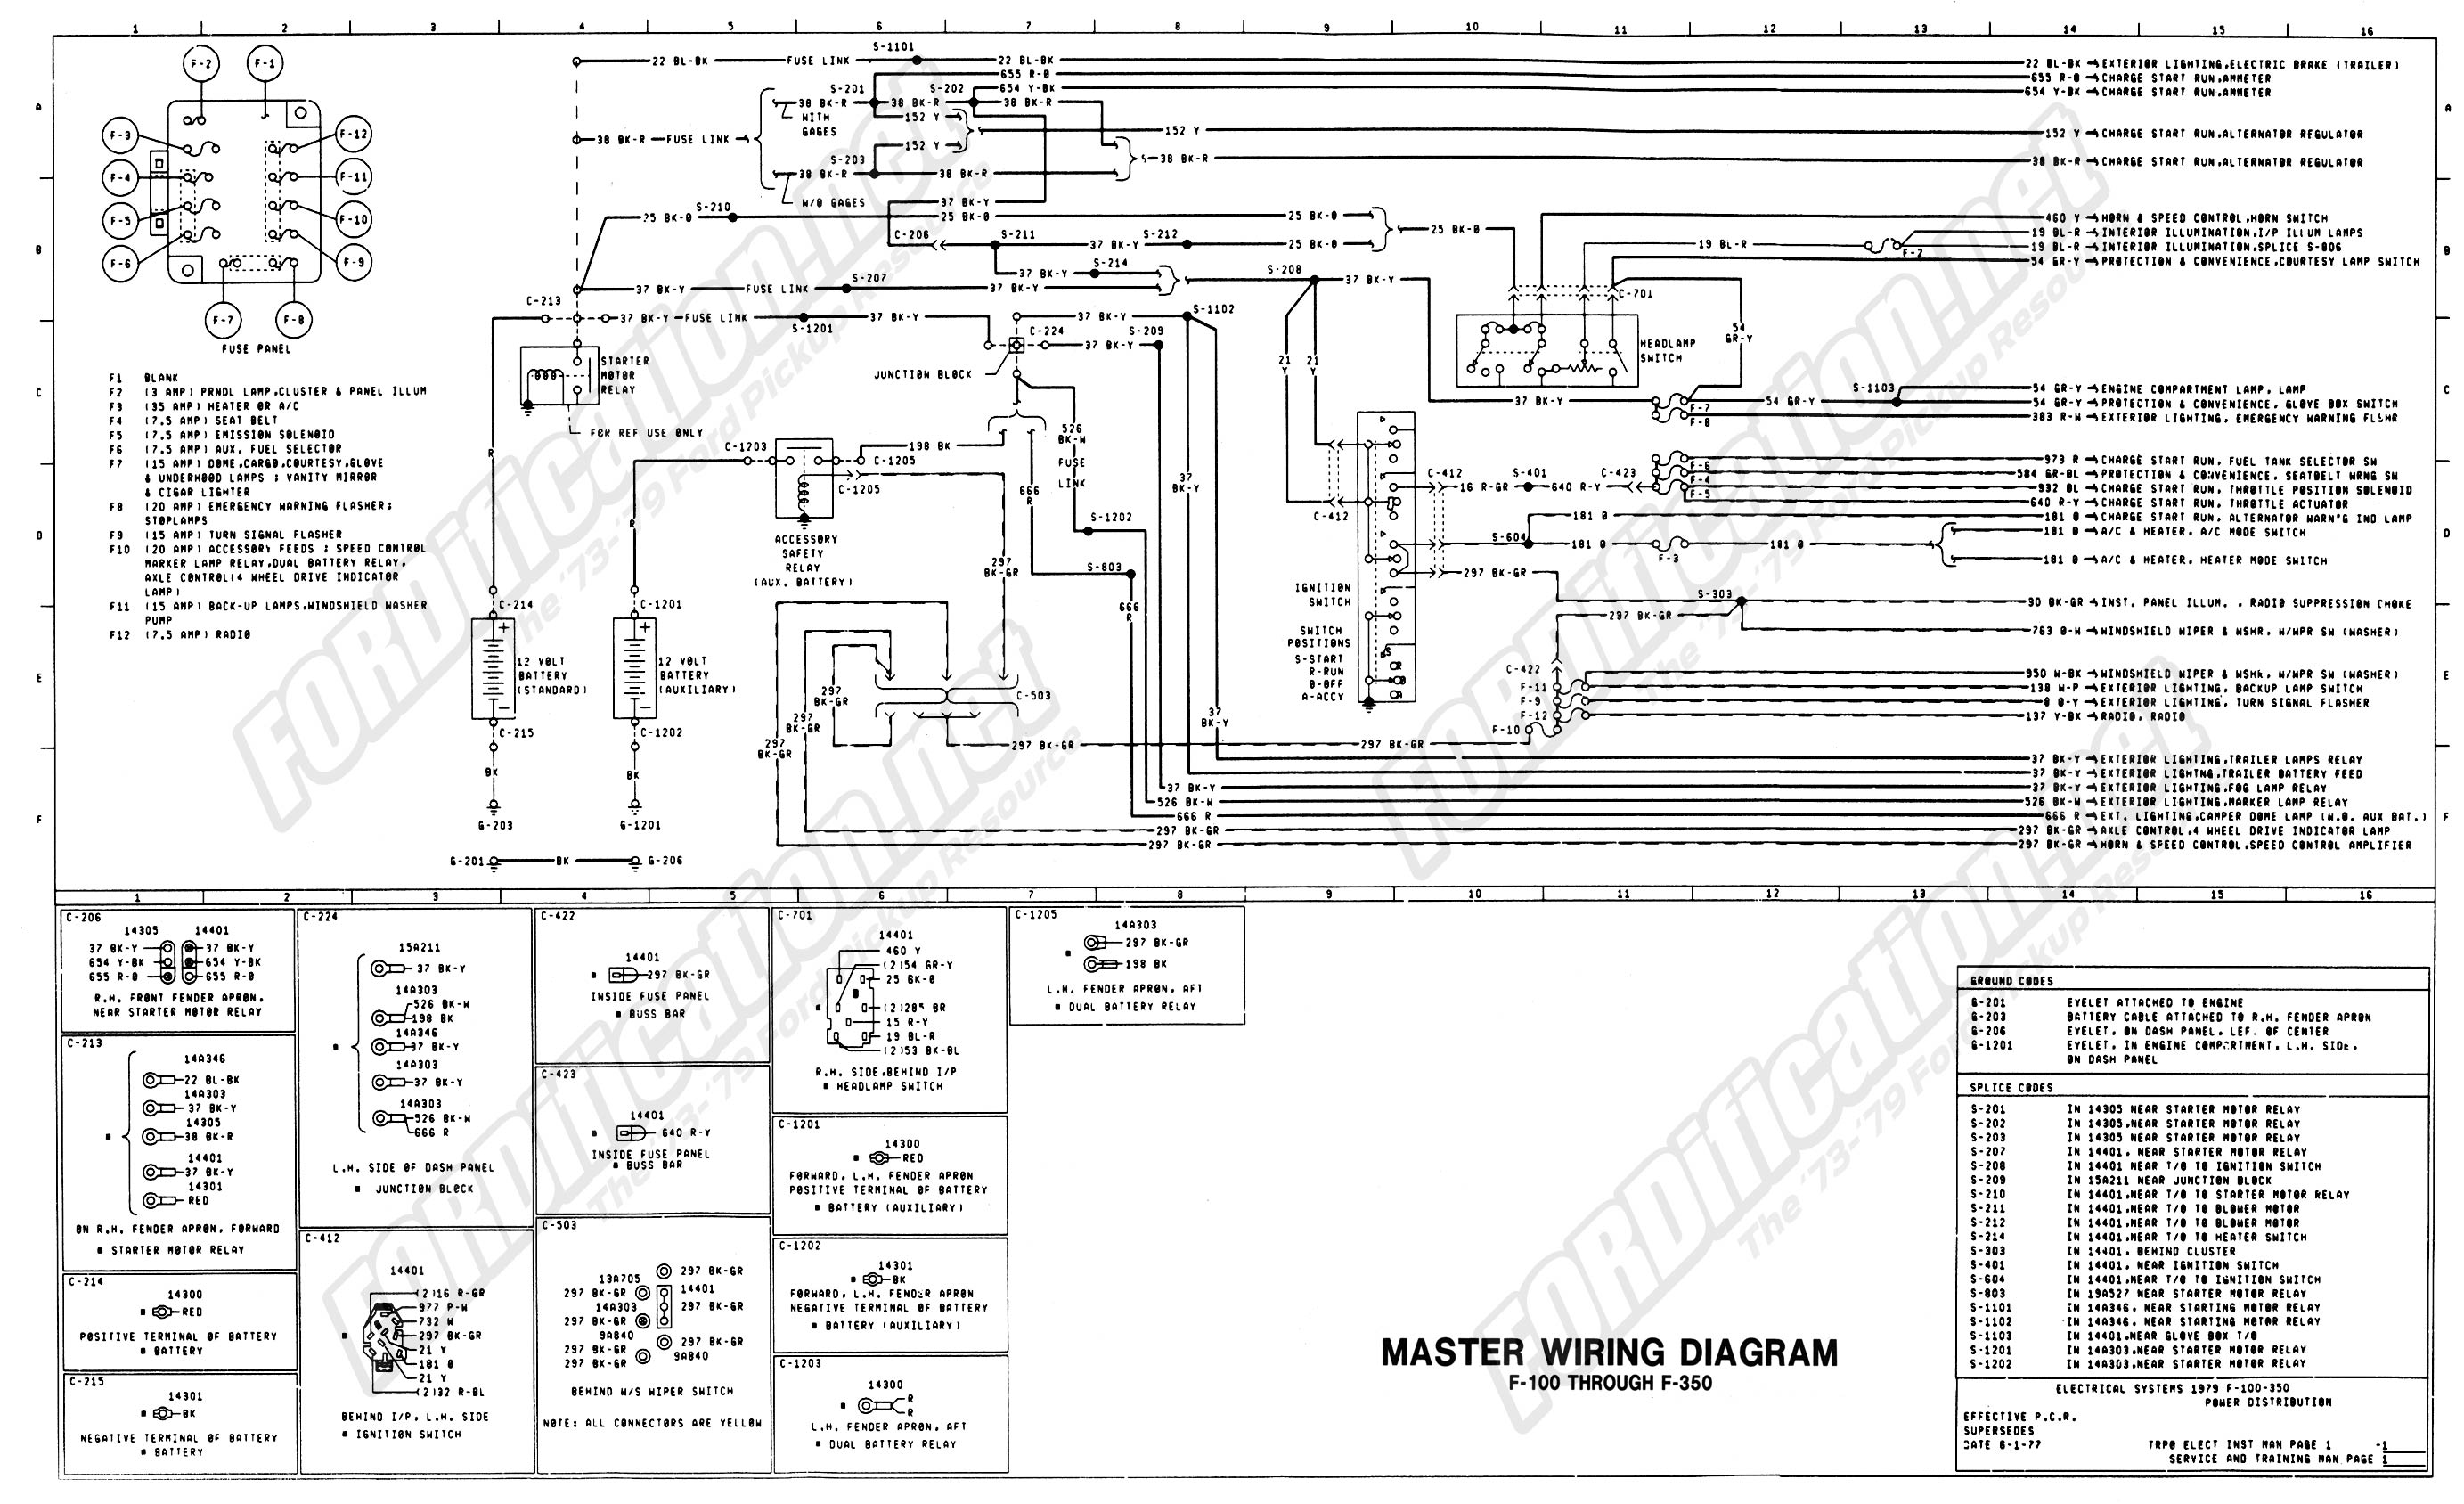 wiring_79master_1of9 1973 1979 ford truck wiring diagrams & schematics fordification net  at panicattacktreatment.co